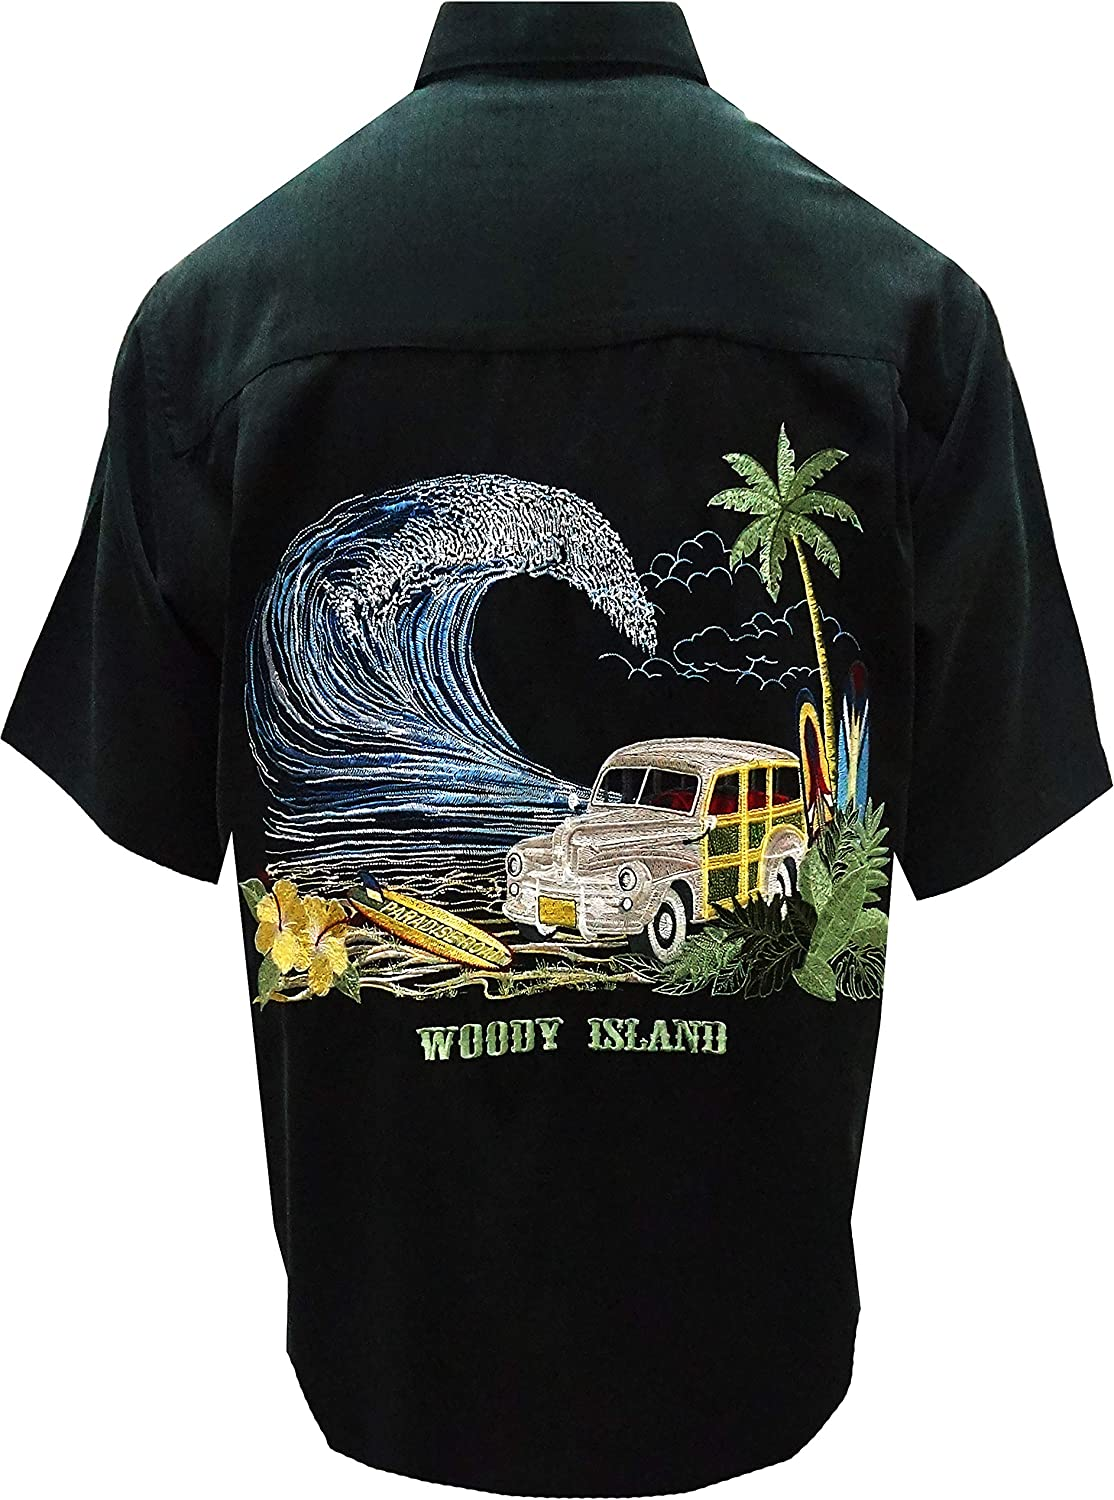 Bamboo Cay Men's Woody Island Car Embroidered Tropical Short Sleeve Shirt